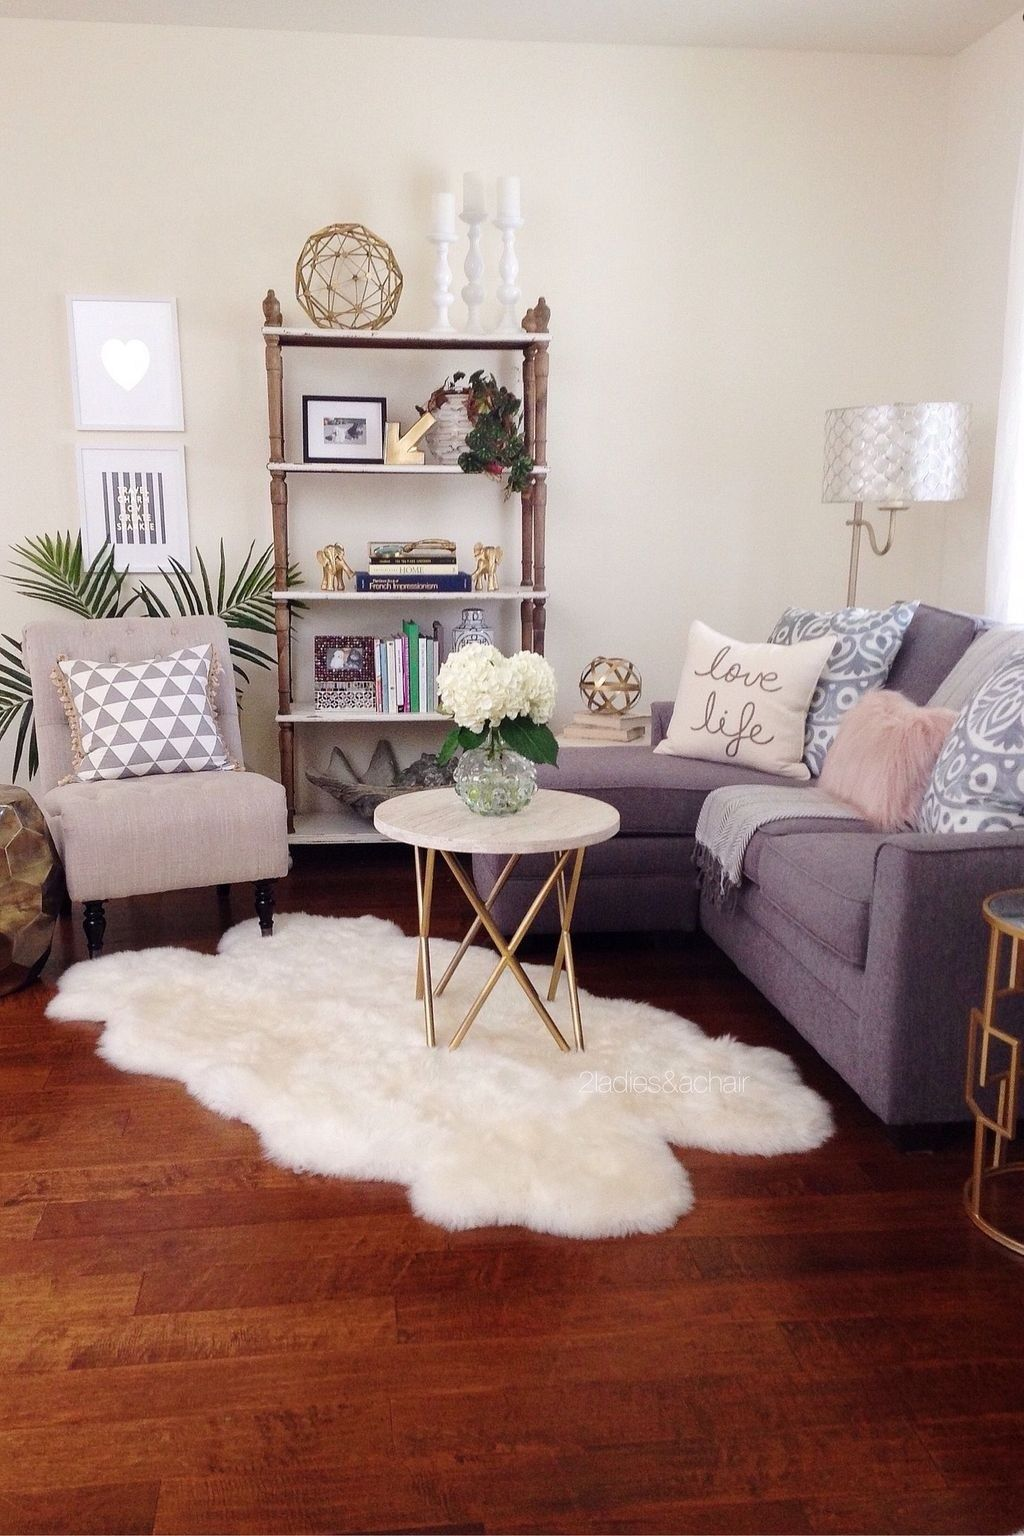 49 Top Design Ideas For A Small Living Room Small Living Room Layout Apartment Living Room Design Small Living Room Decor Small apartment living room furniture arrangement